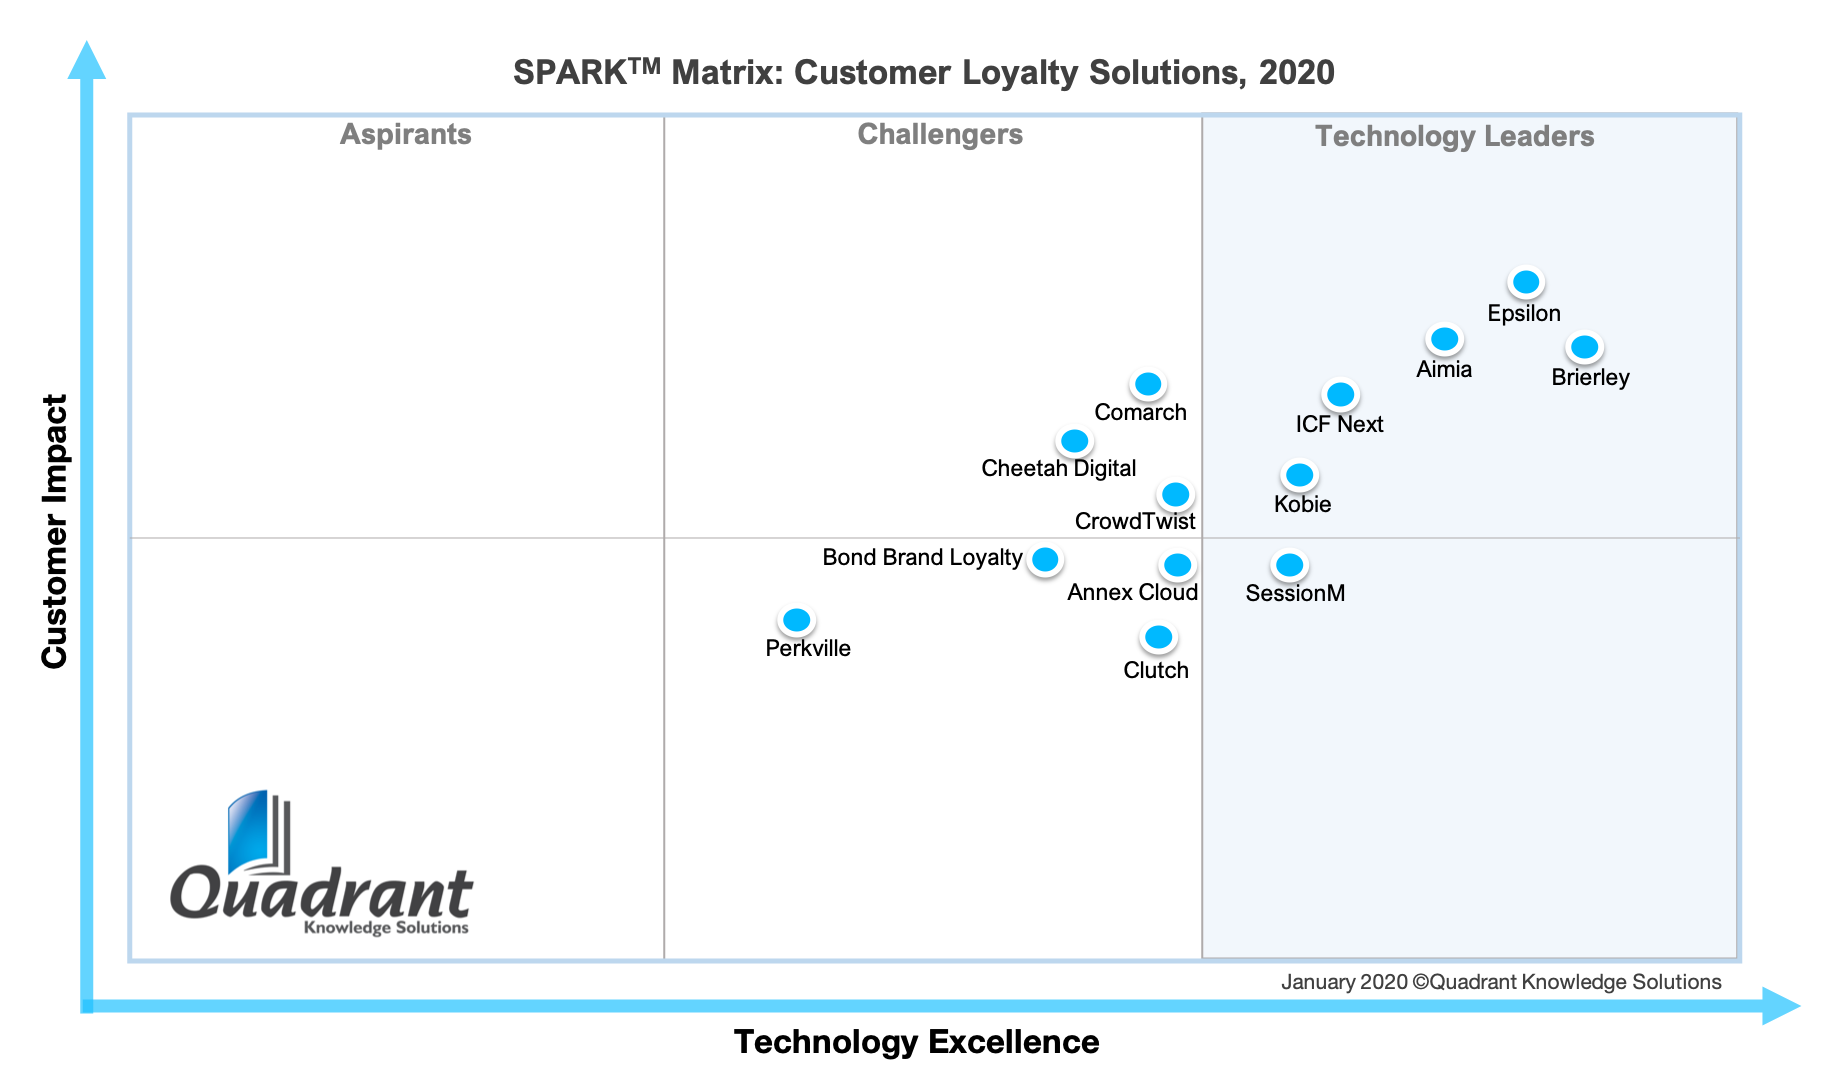 2020 SPARK Matrix_Customer Loyalty Solutions Market_Quadrant Knowledge Solutions_Brierley LoyaltyOnDemand